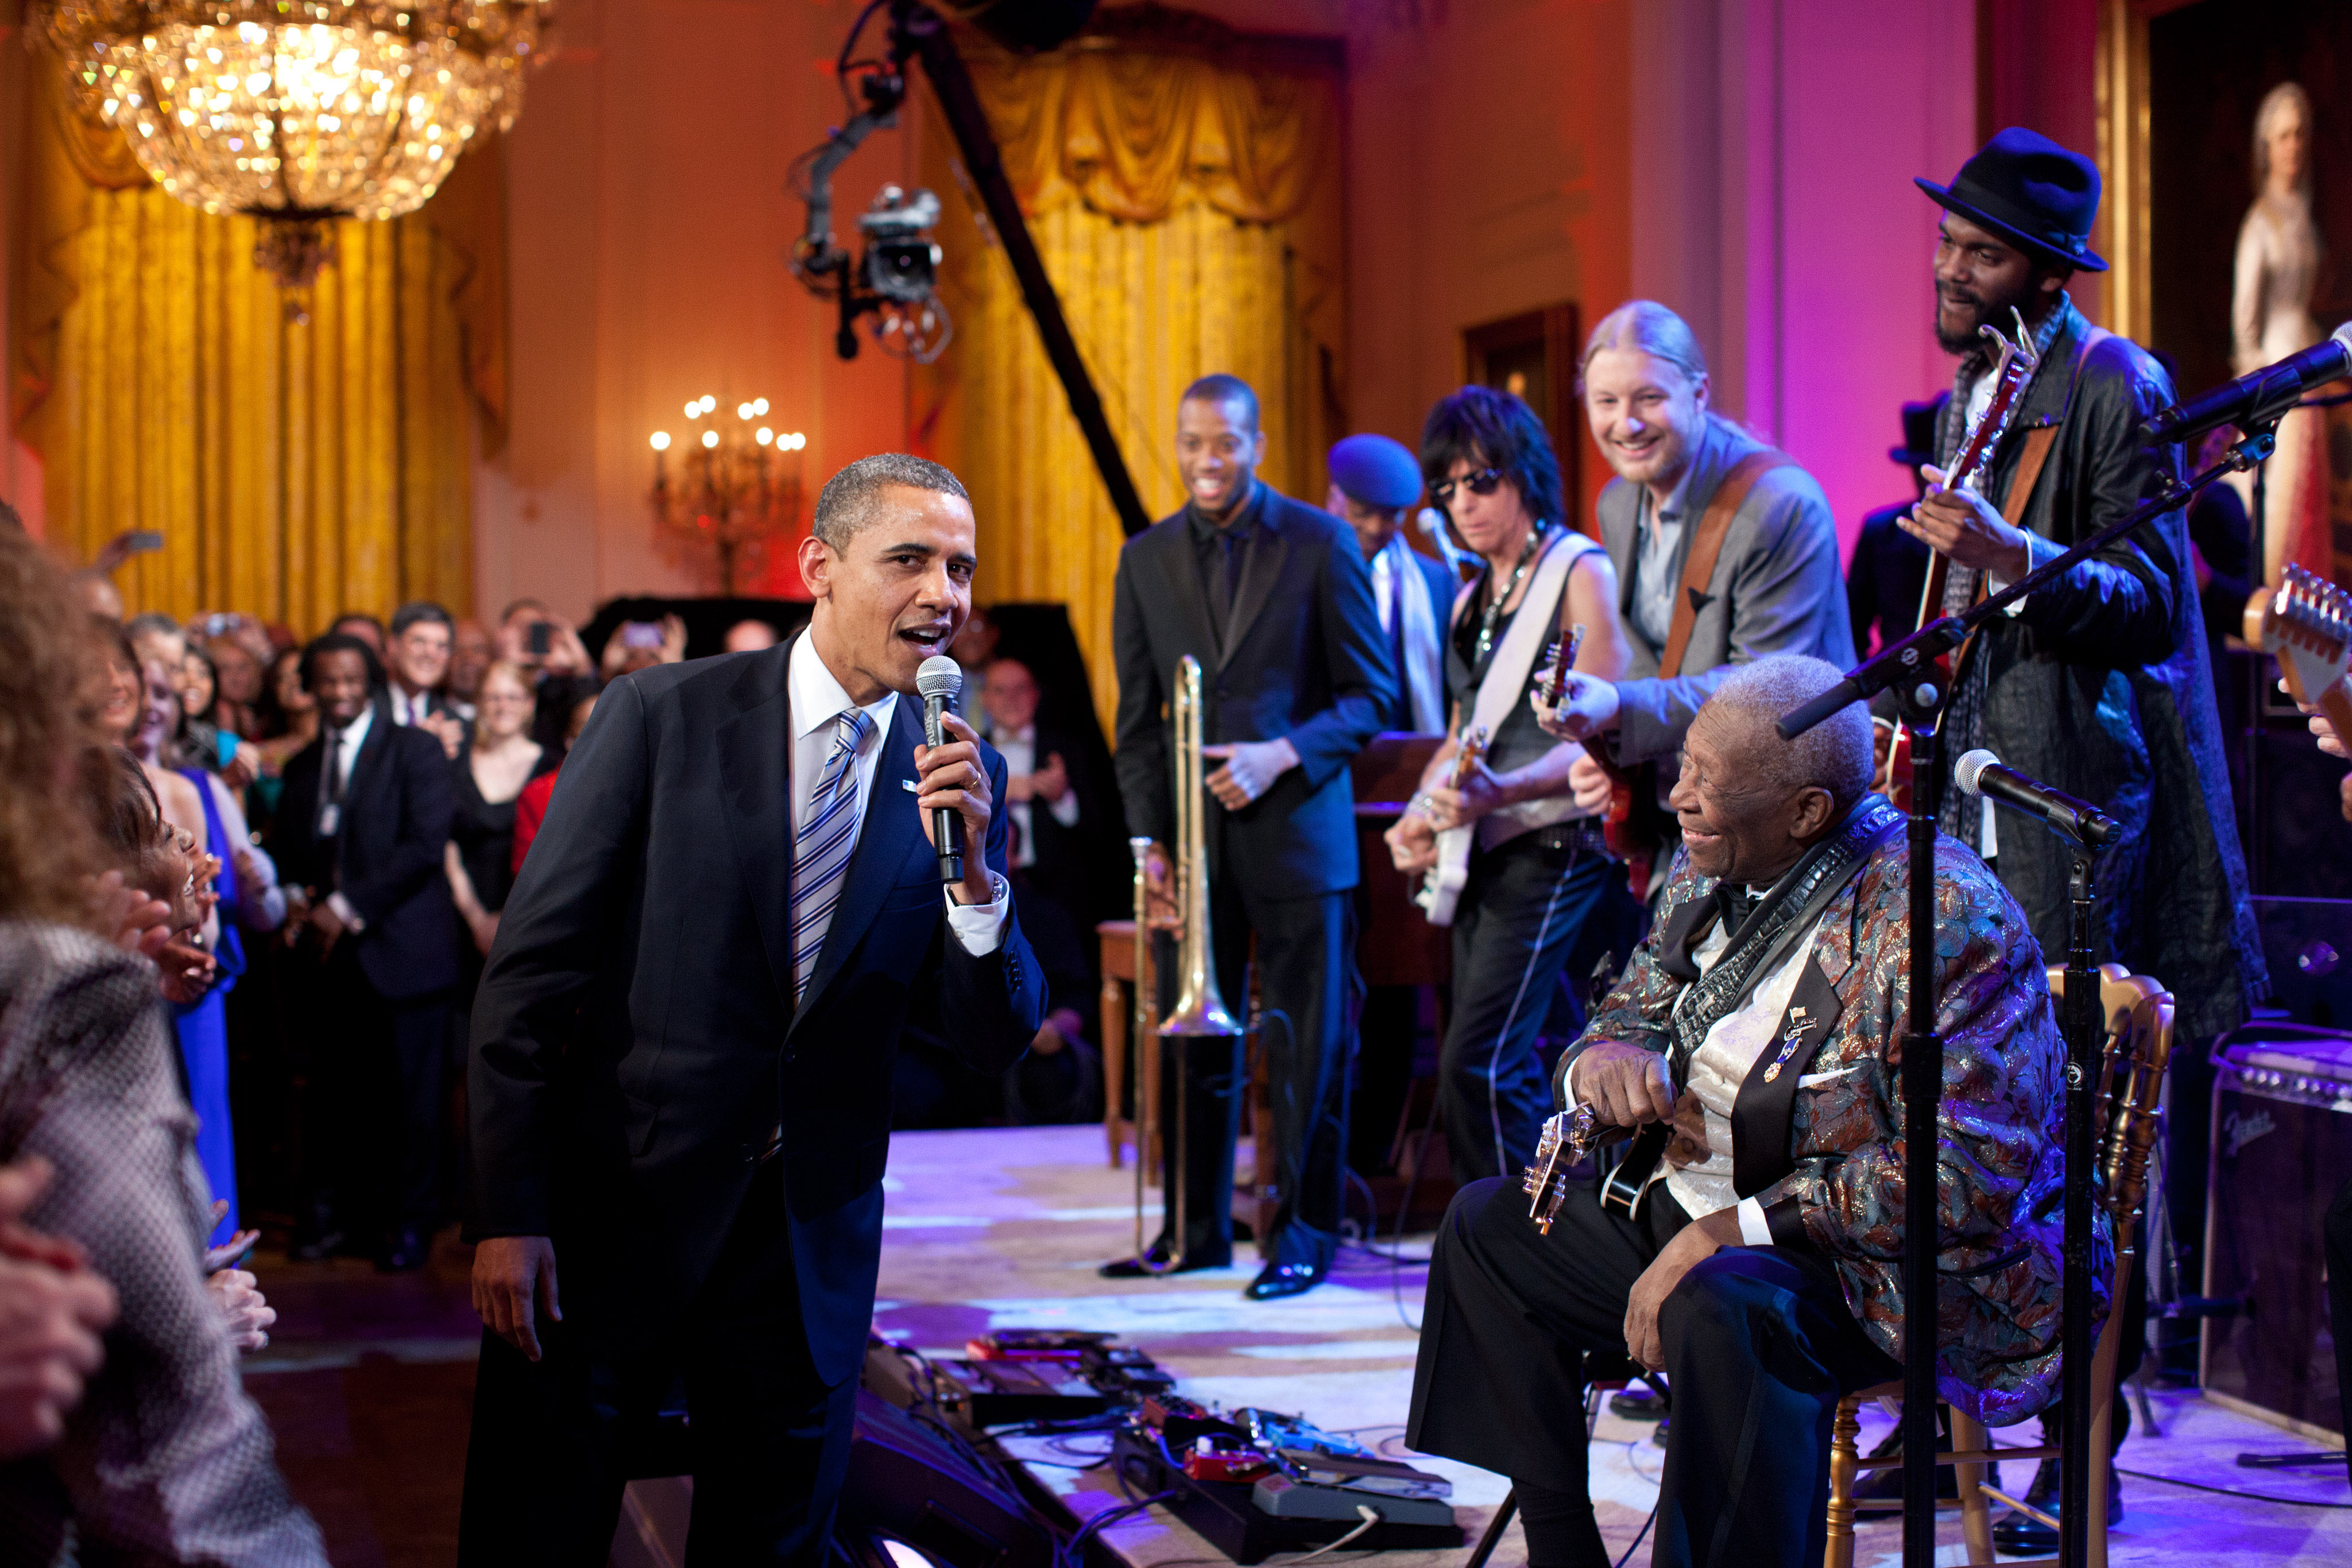 President Obama joins B.B. King (seated) in singing Sweet Home Chicago during the In Performance at the White House: Red, White and Blues concert in the East Room of the White House, Feb. 21, 2012.